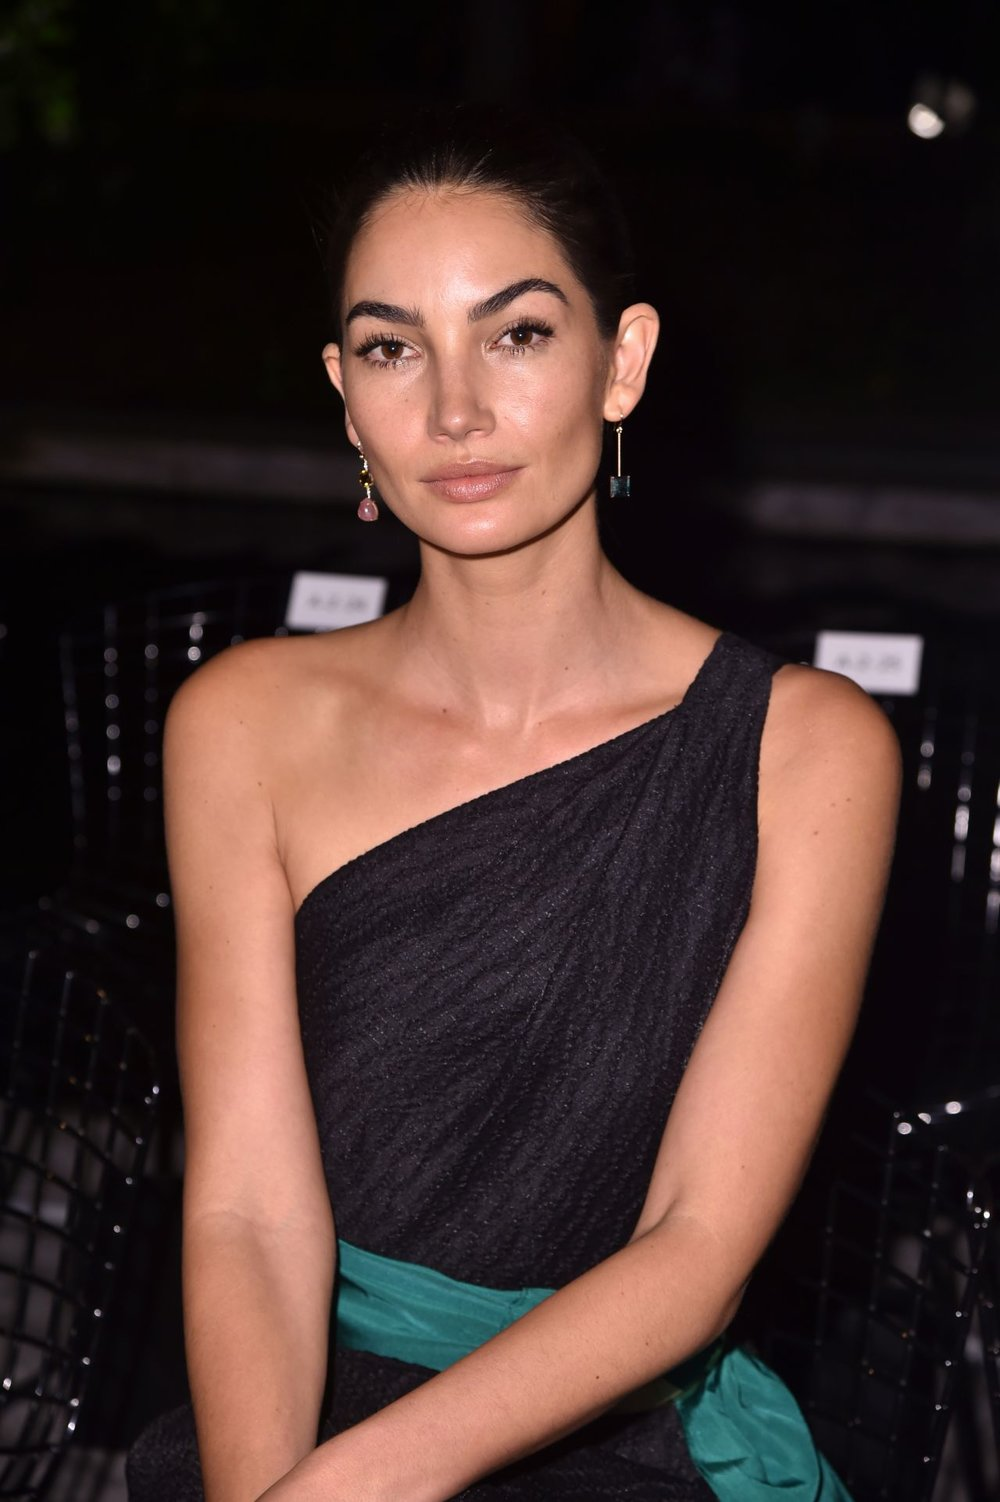 lily-aldridge-carolina-herrera-show-in-nyc-09-11-2017-3.jpg